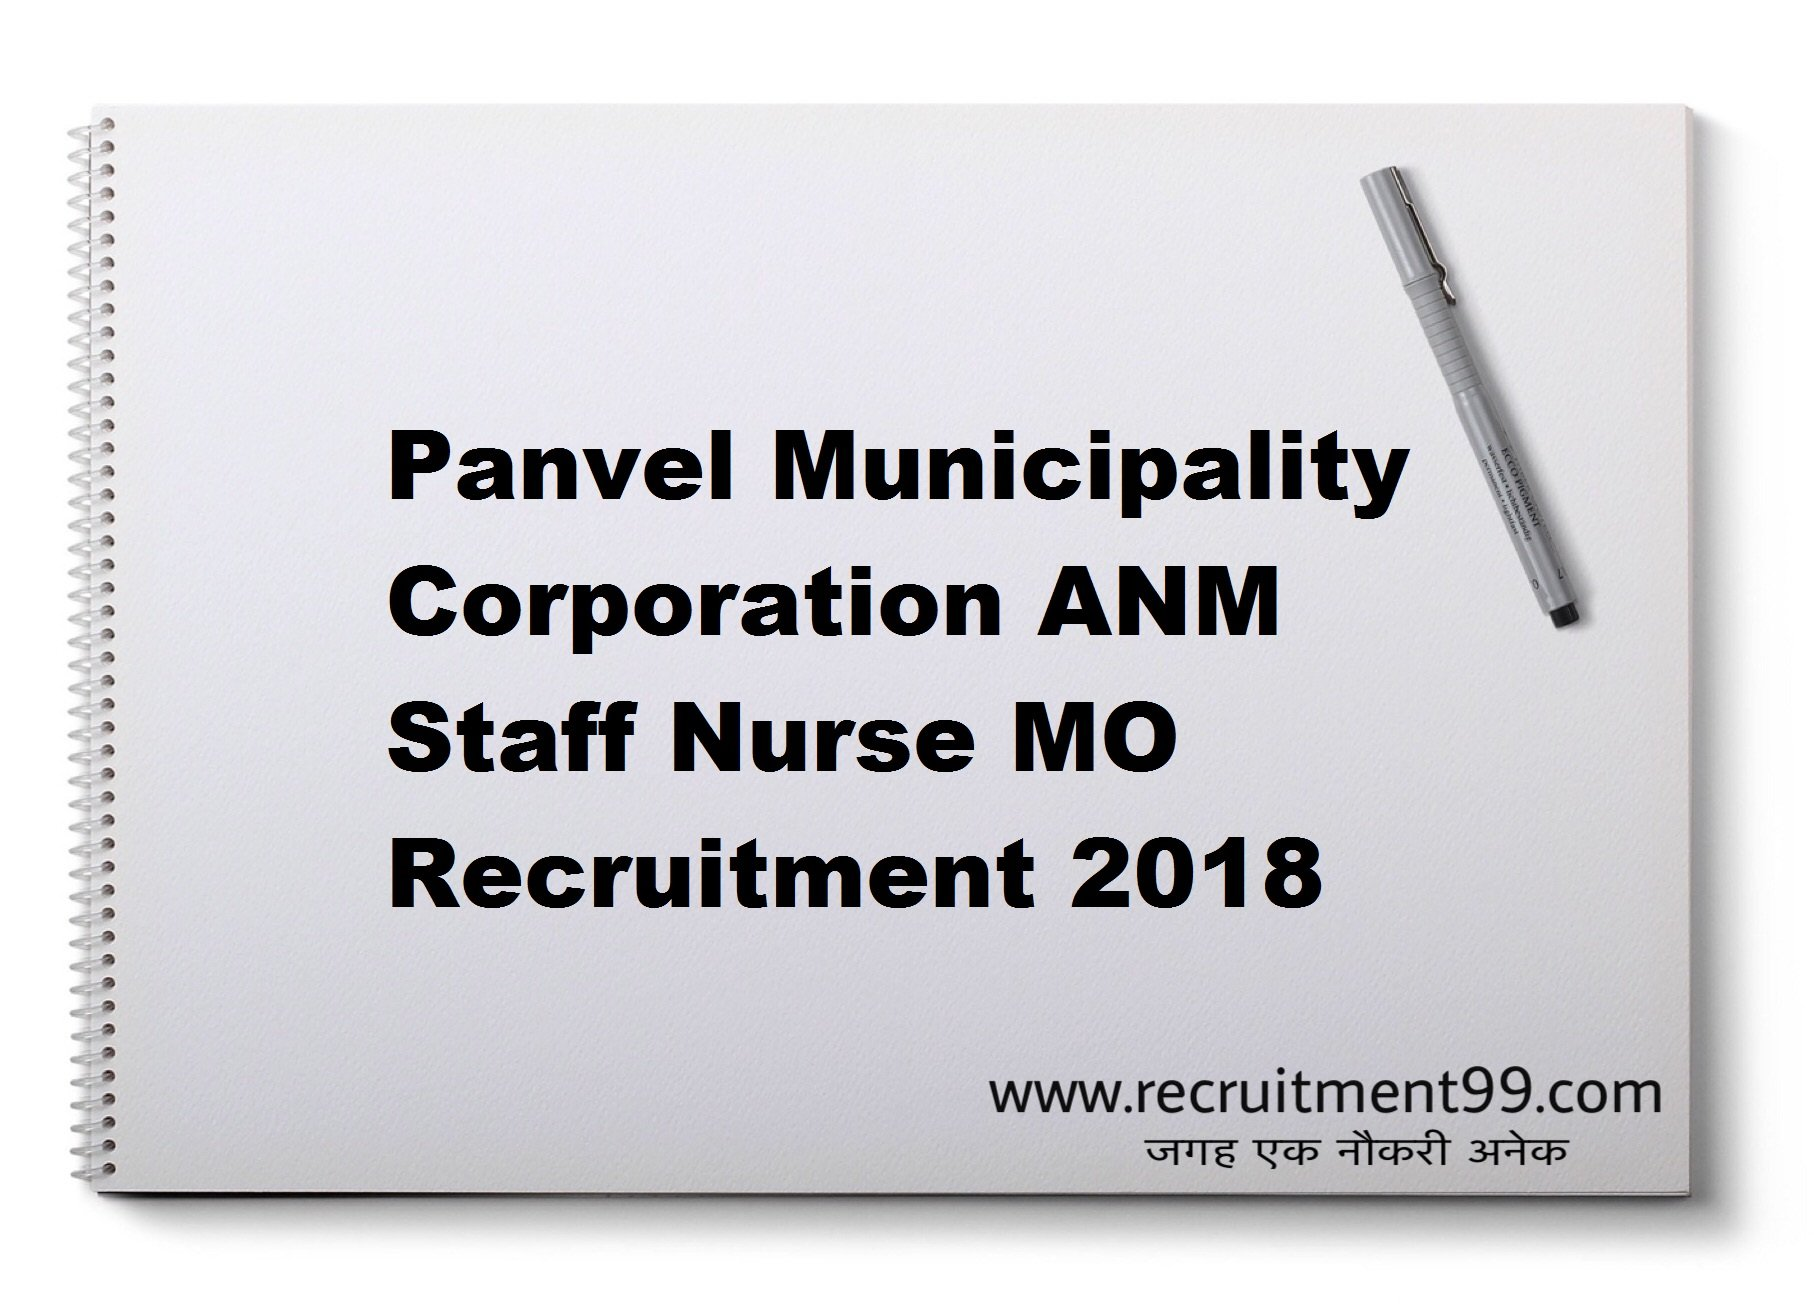 Panvel Municipality Corporation ANM Staff Nurse MO Recruitment Admit Card Result 2018